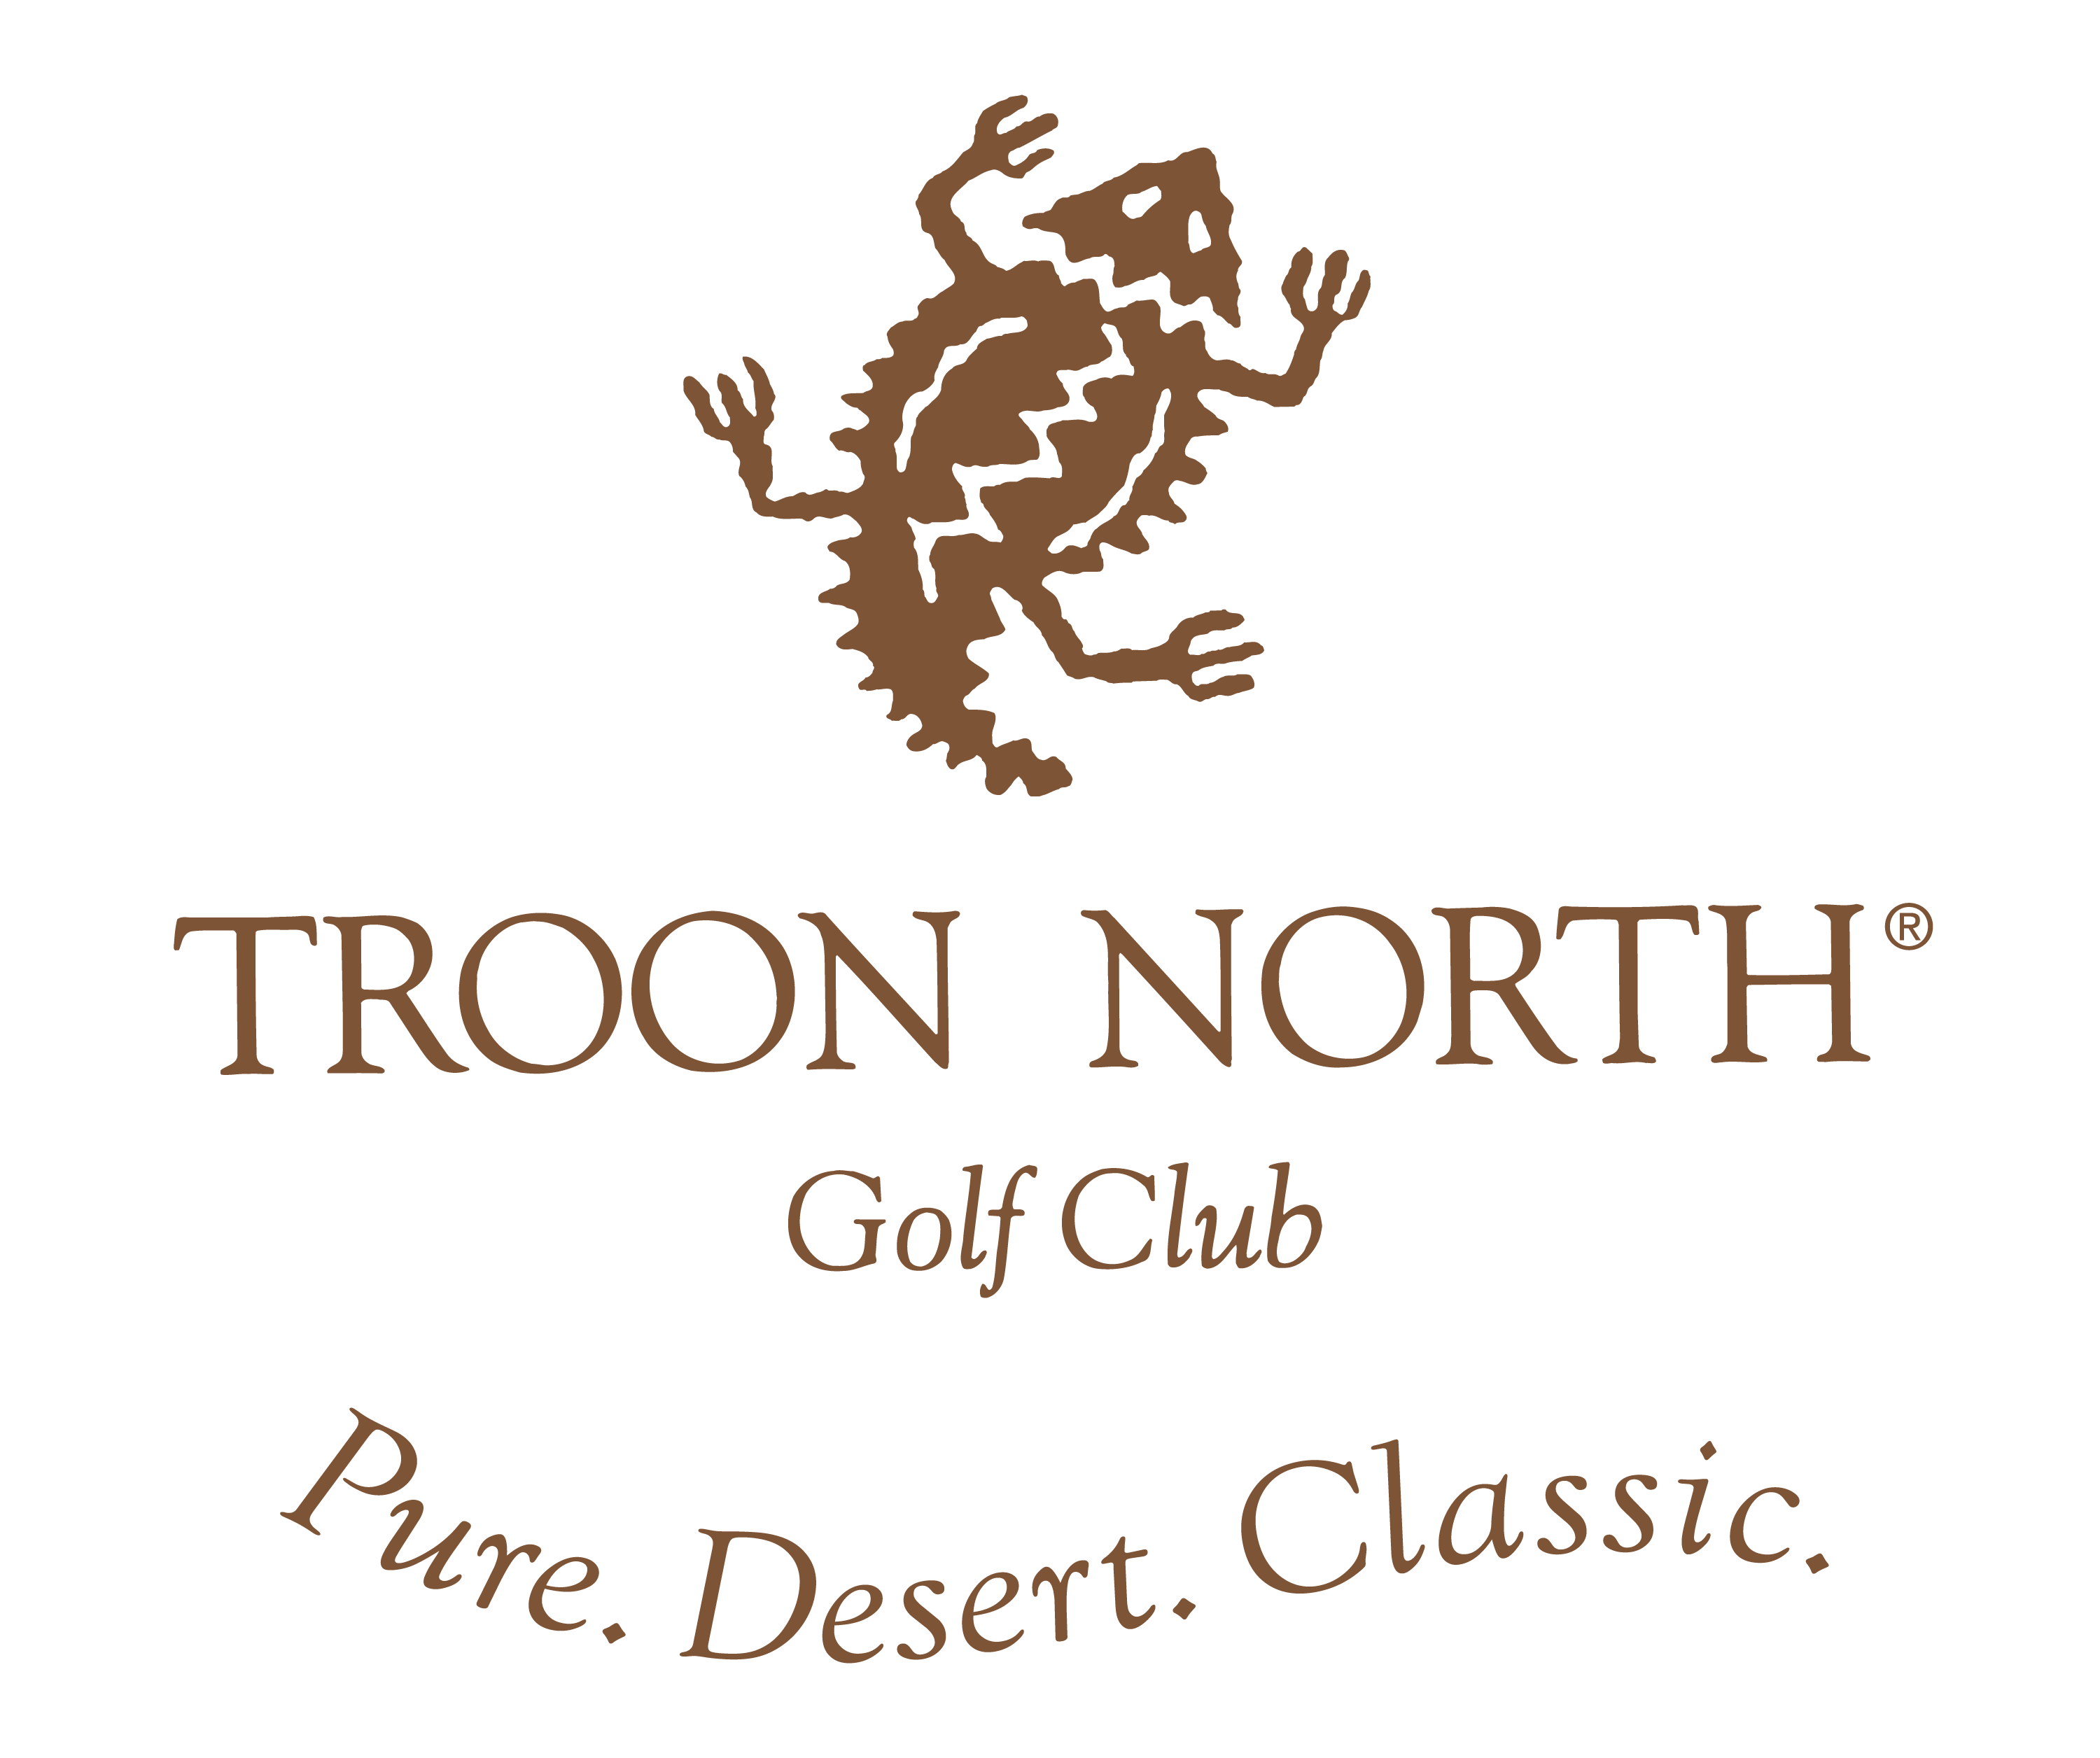 Troon North Golf Club's Logo